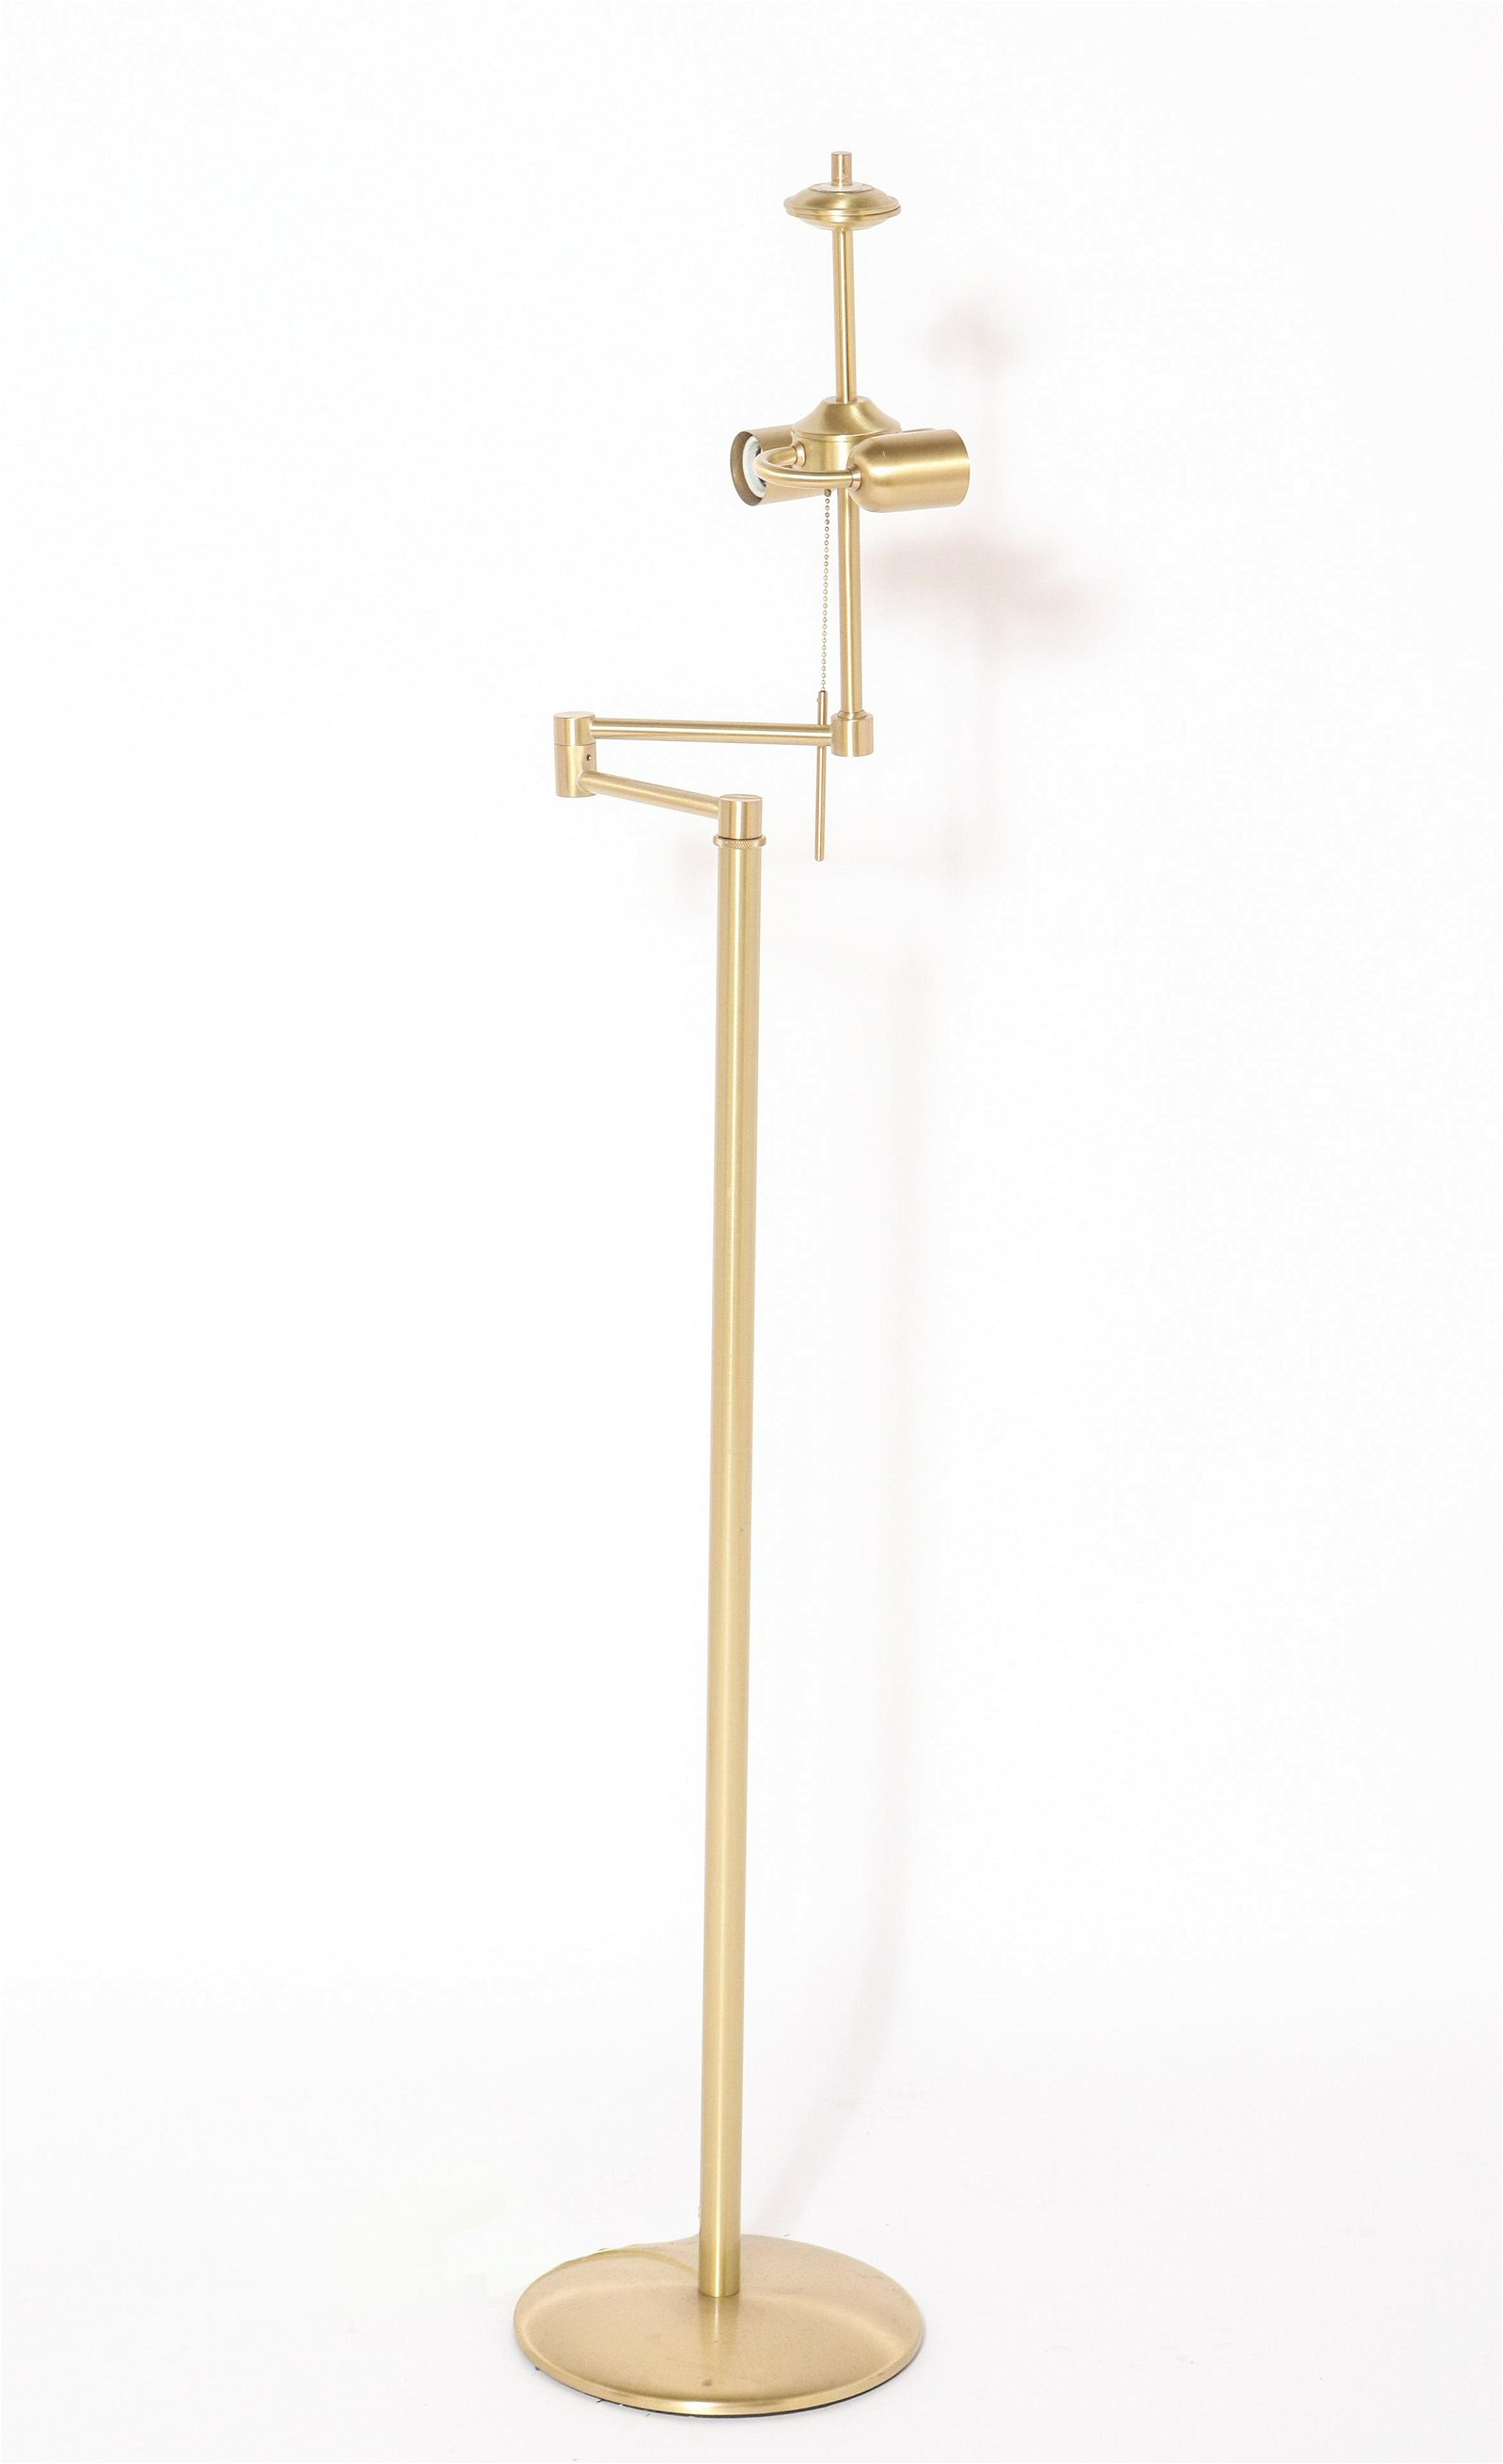 Holtkotter Brass Swing Arm Floor Lamp